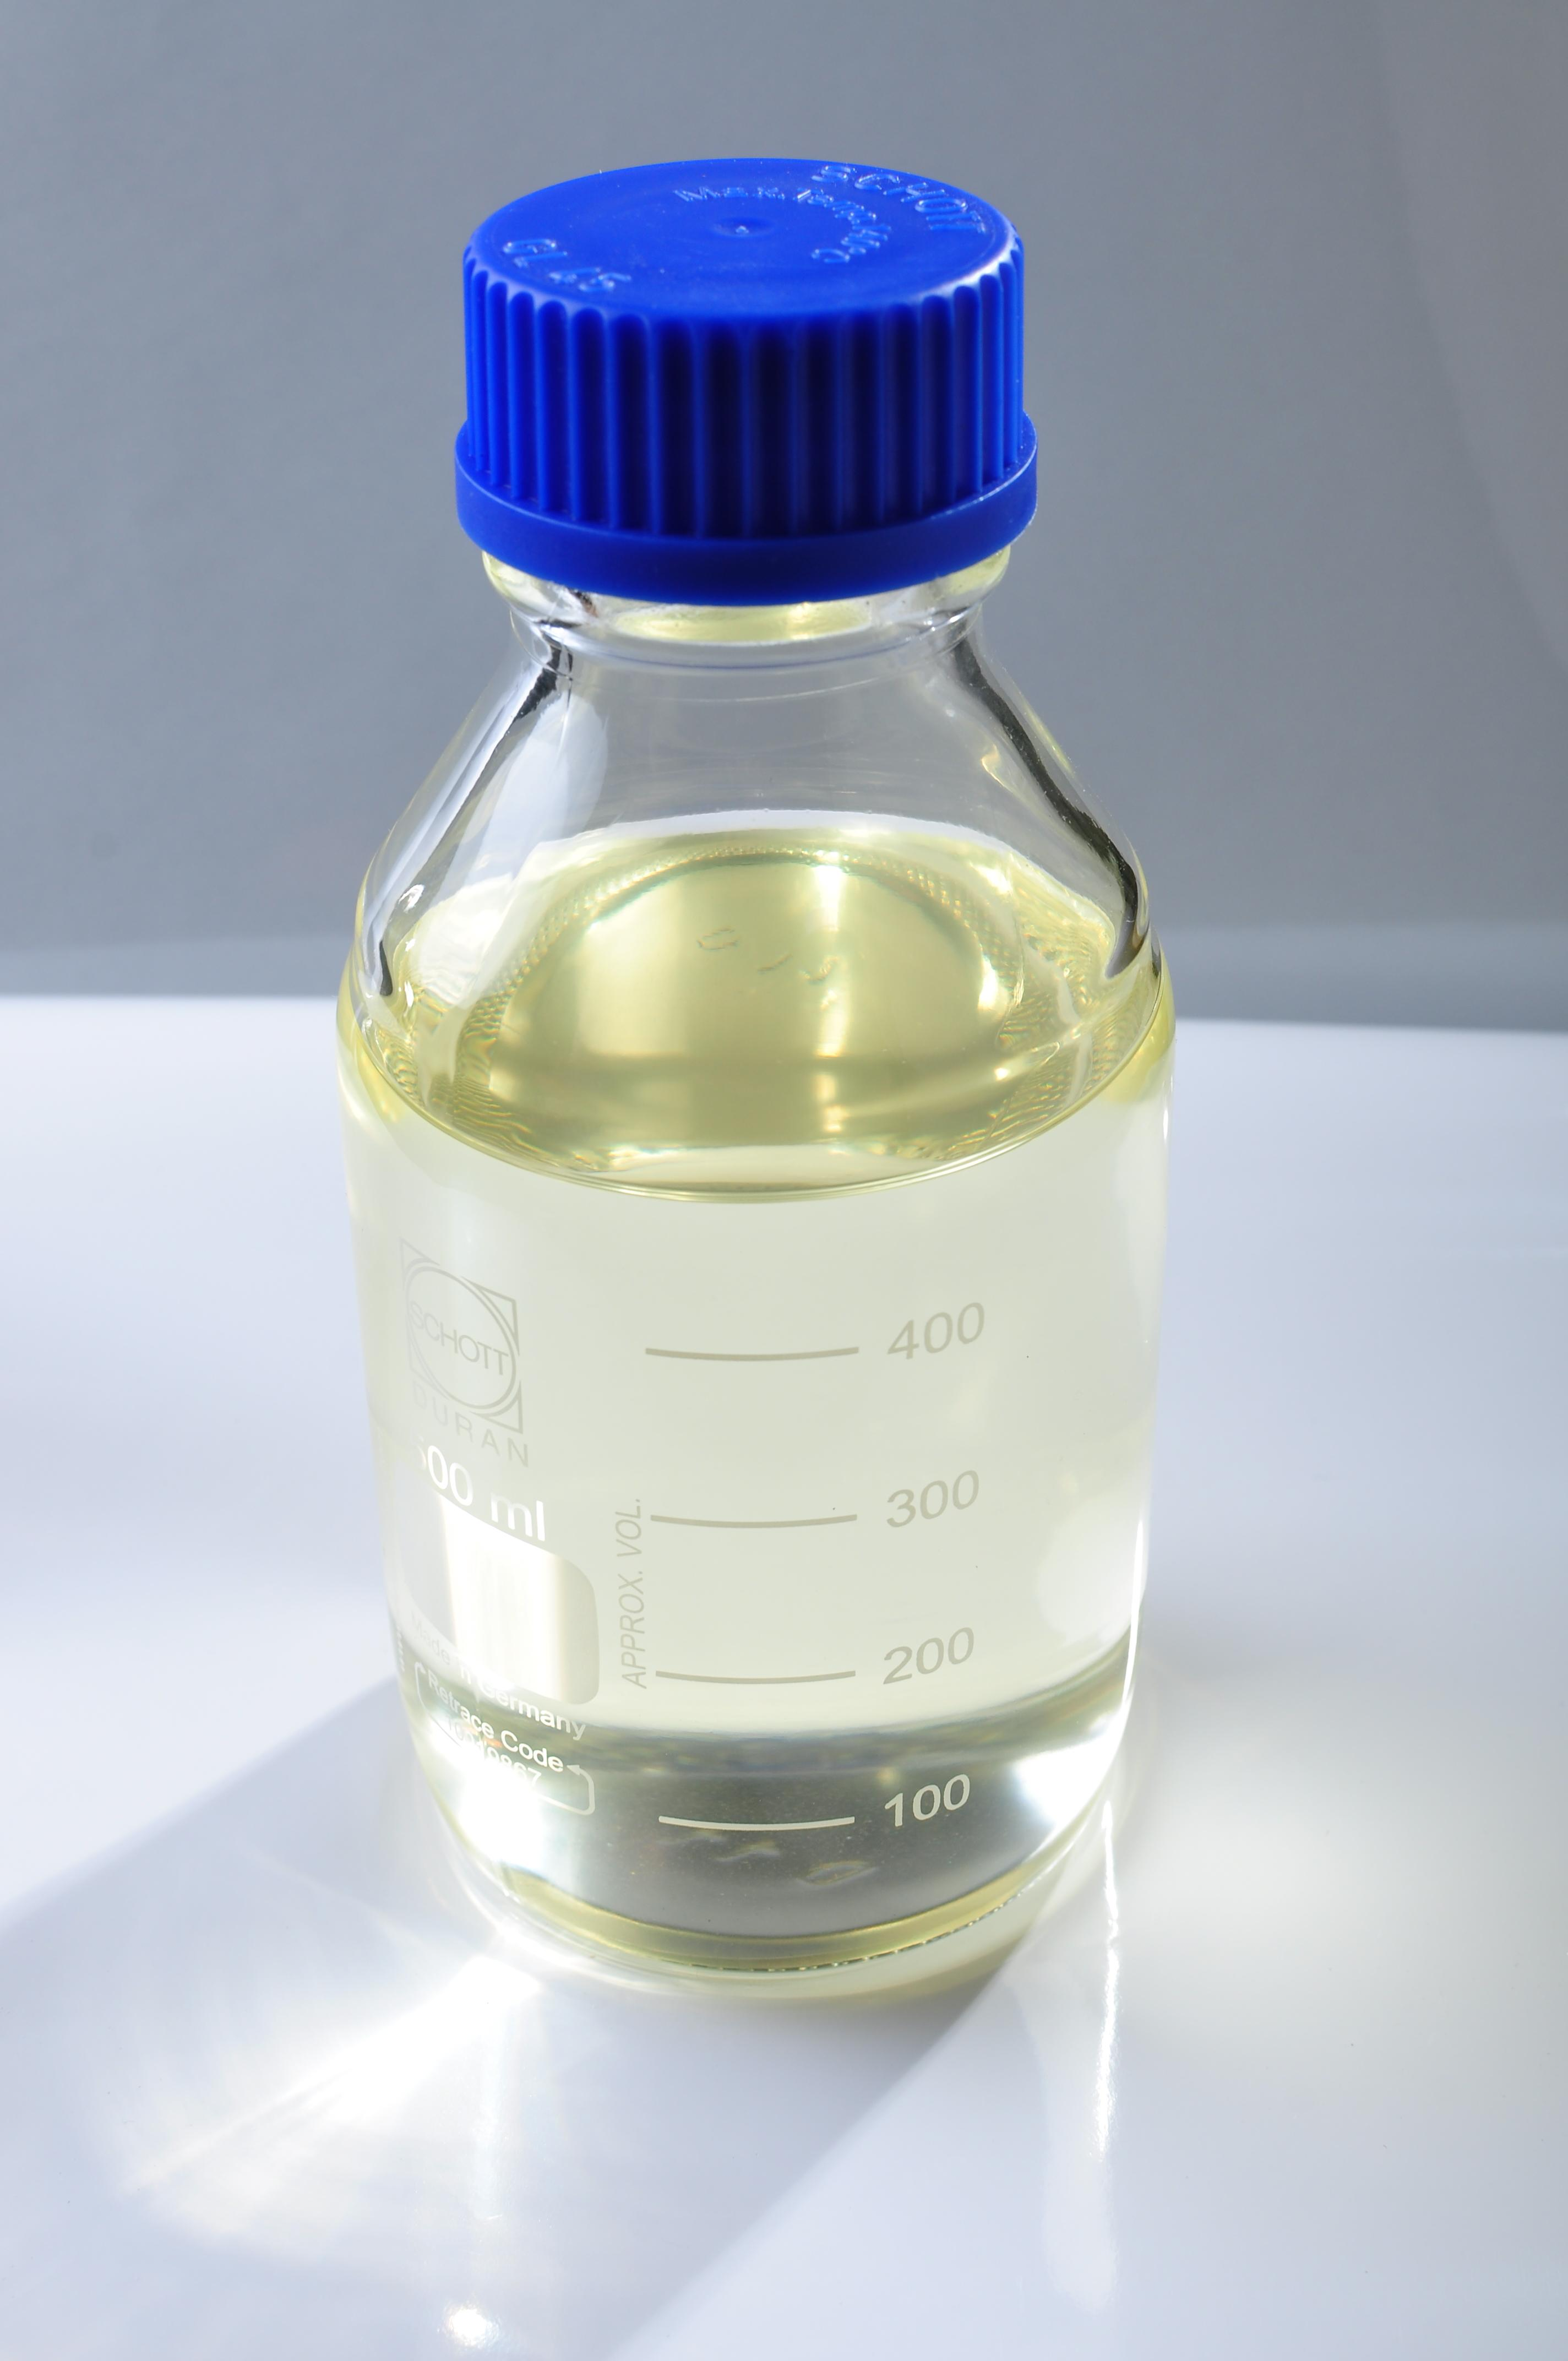 UCOME biodiesel